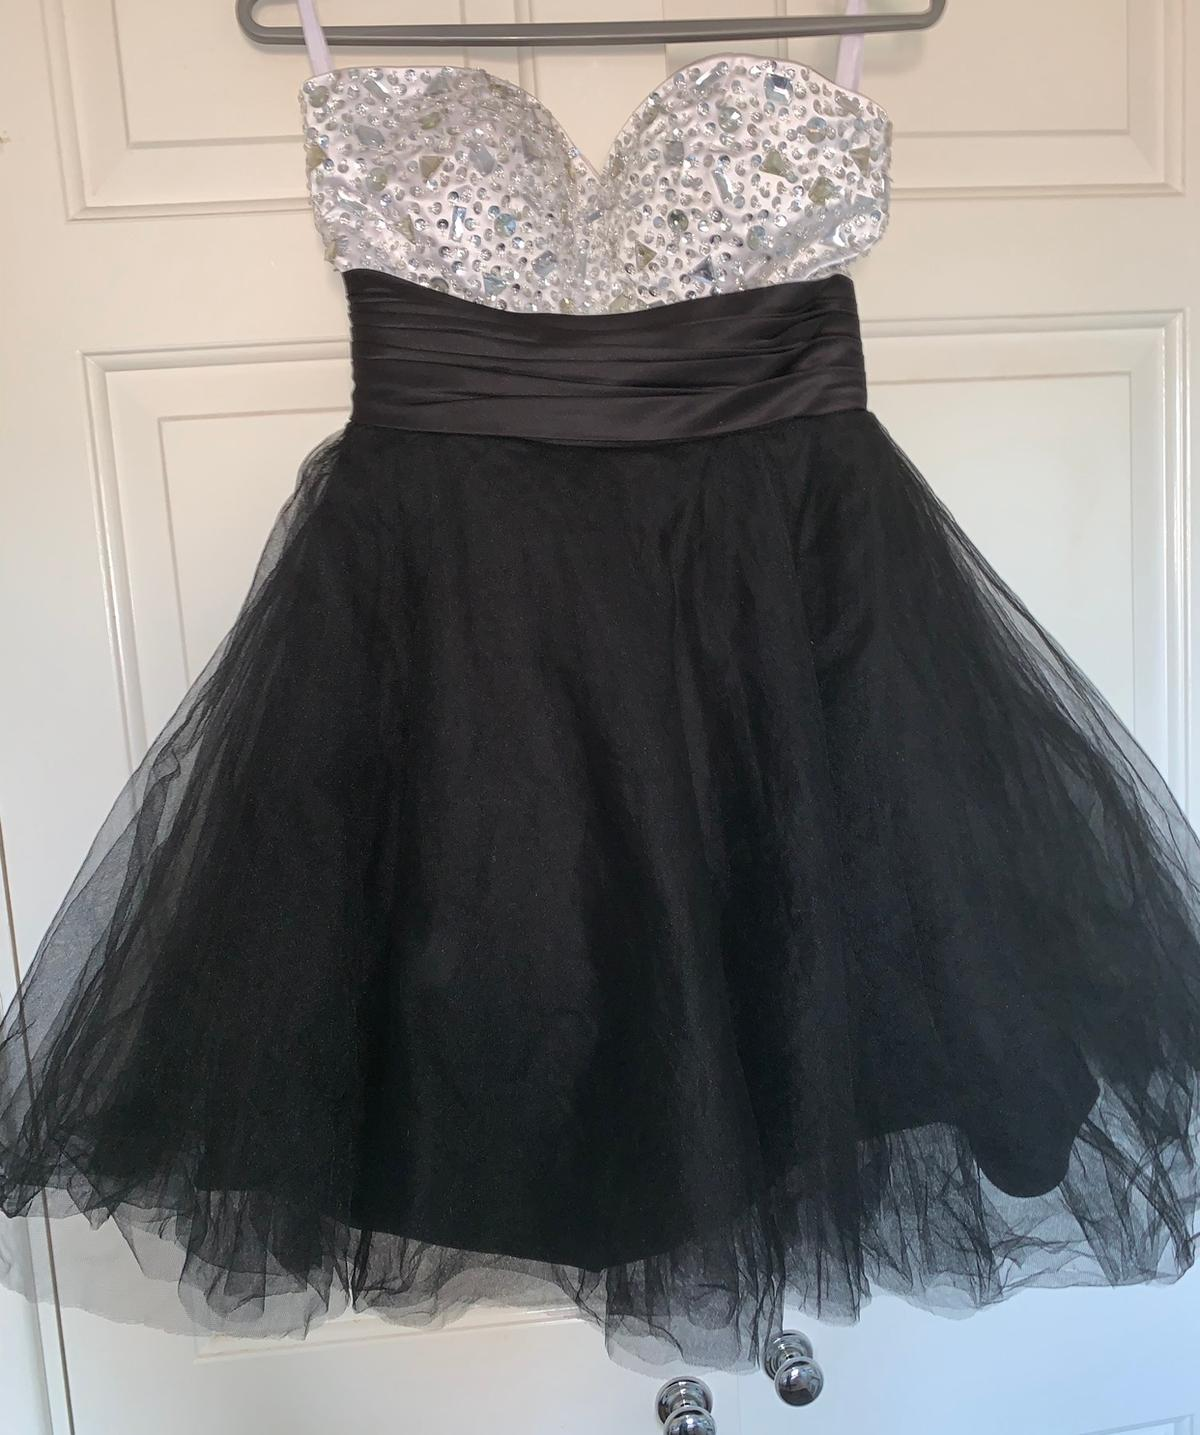 Black & Sequin Prom Dress Size 10 Worn on one occasion, great condition RRP: £135 Open to Offers x